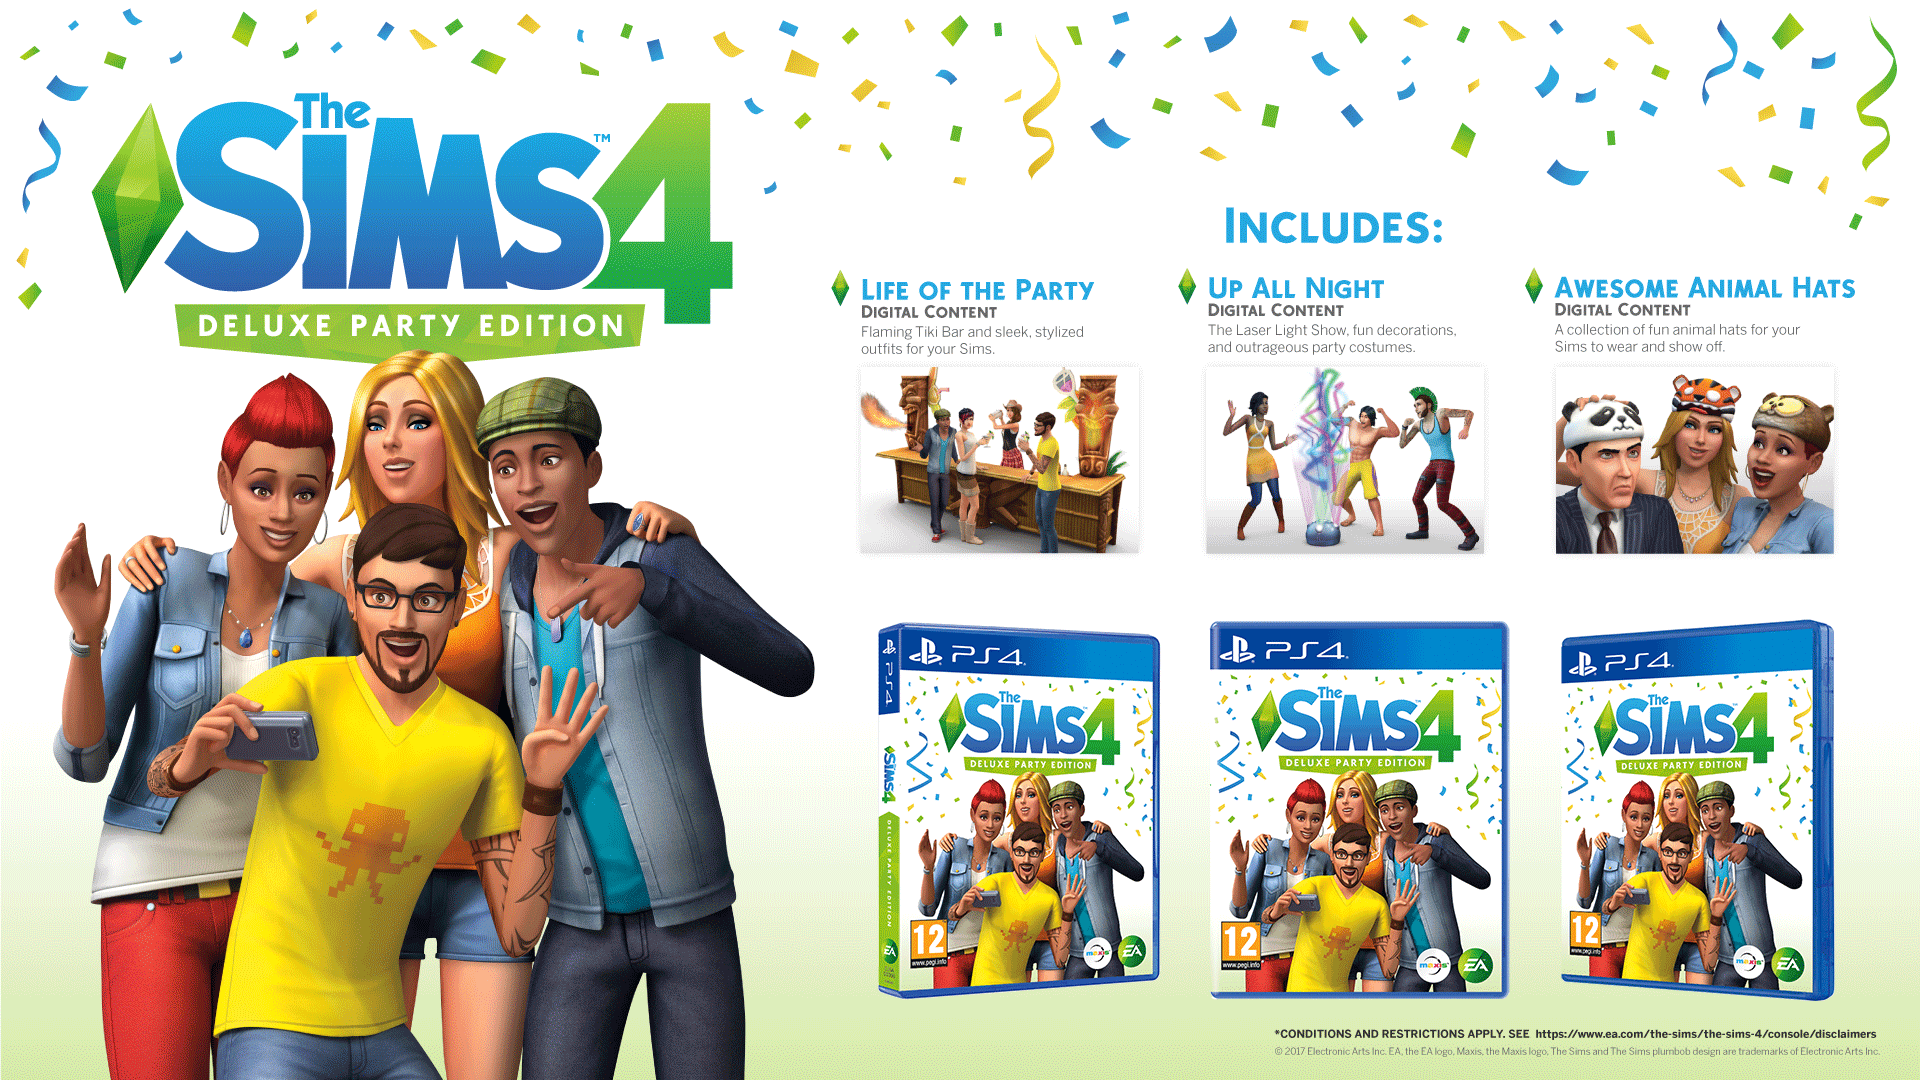 Buy The Sims 4 Deluxe Party Edition On Playstation 4 Game